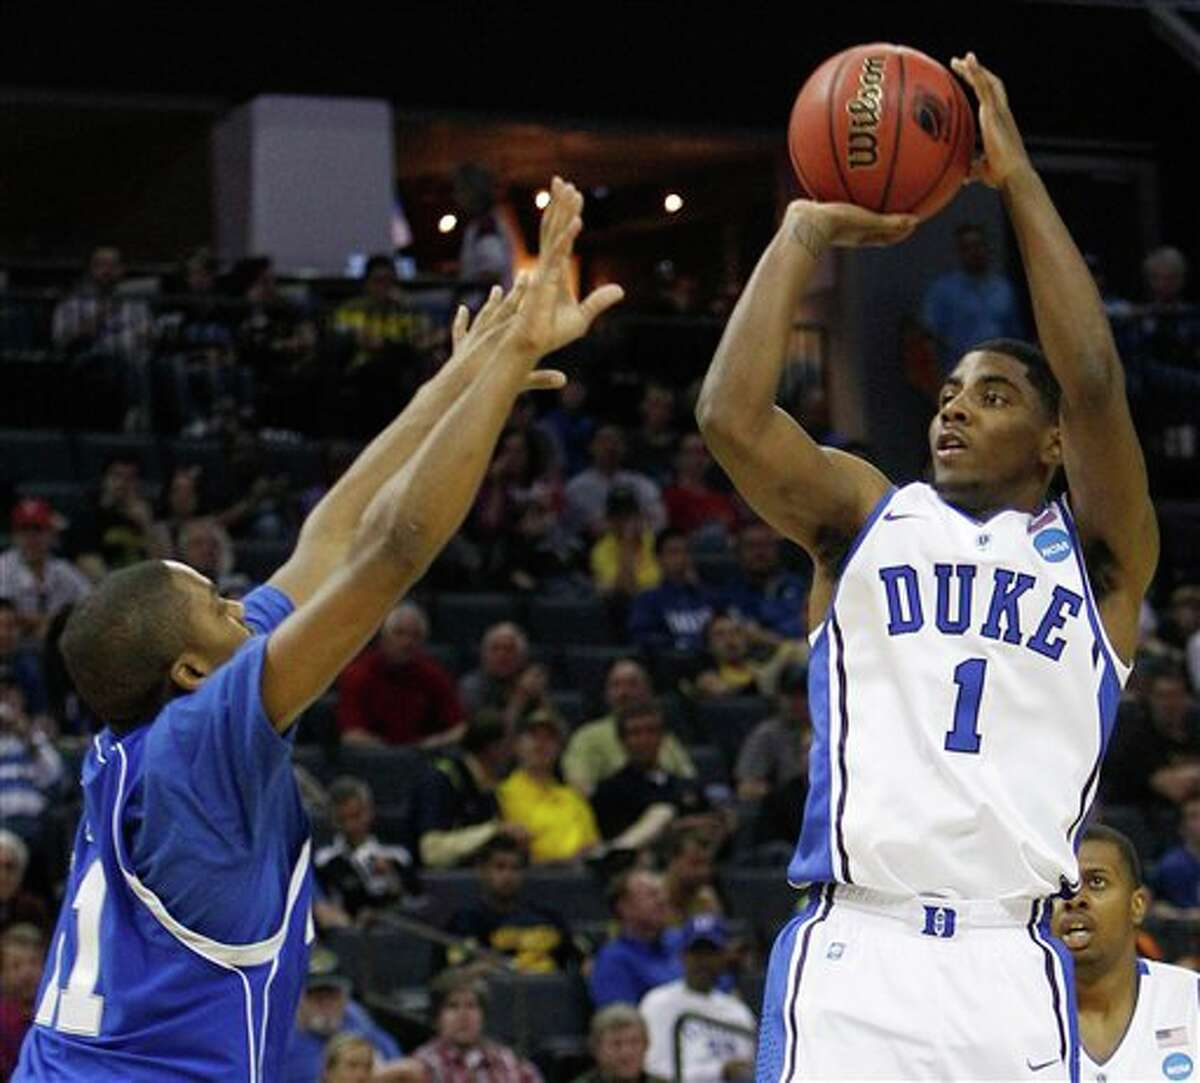 Duke guard Kyrie Irving (1) shooting over Hampton guard Mike Tuitt (11) in the second half of a West Regional NCAA tournament second round college basketball game, in Charlotte, N.C. Irving is a top prospect in the 2011 NBA draft. (AP Photo)